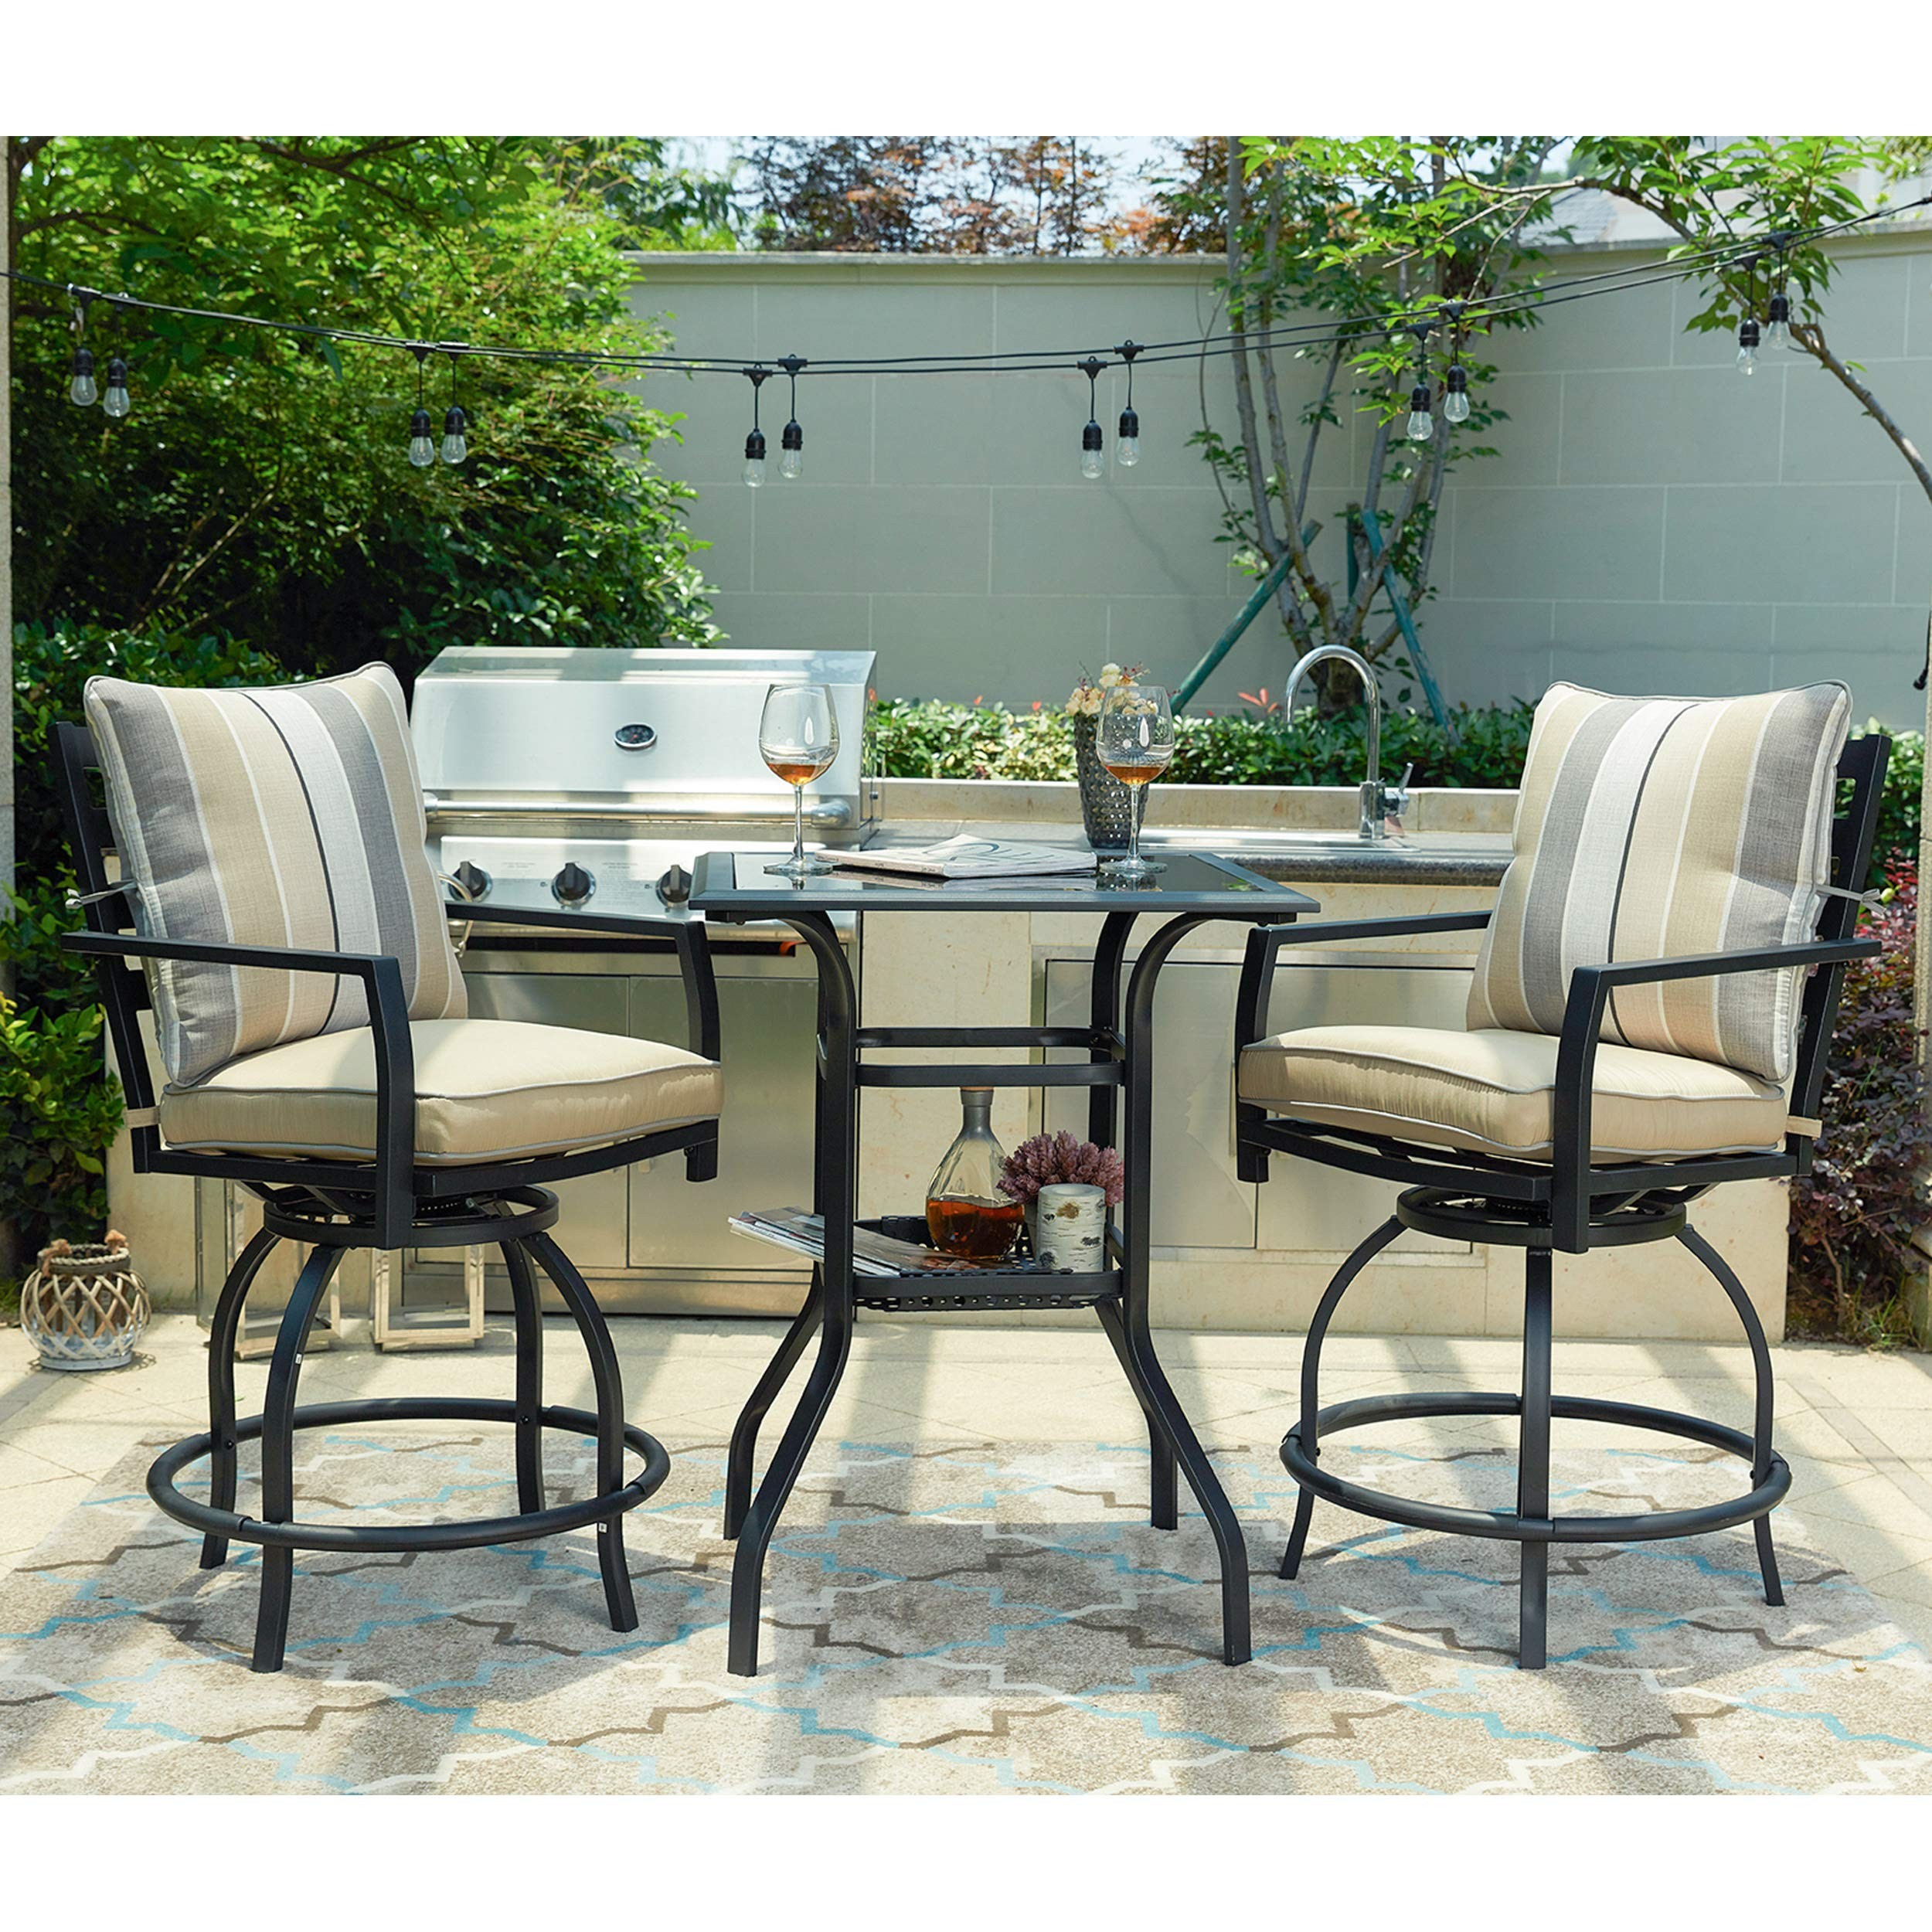 LOKATSE HOME 3 Piece Bistro Set Outdoor Bar Height Swivel with 2 Patio Chairs and 1 Glass Top Table, White and Black